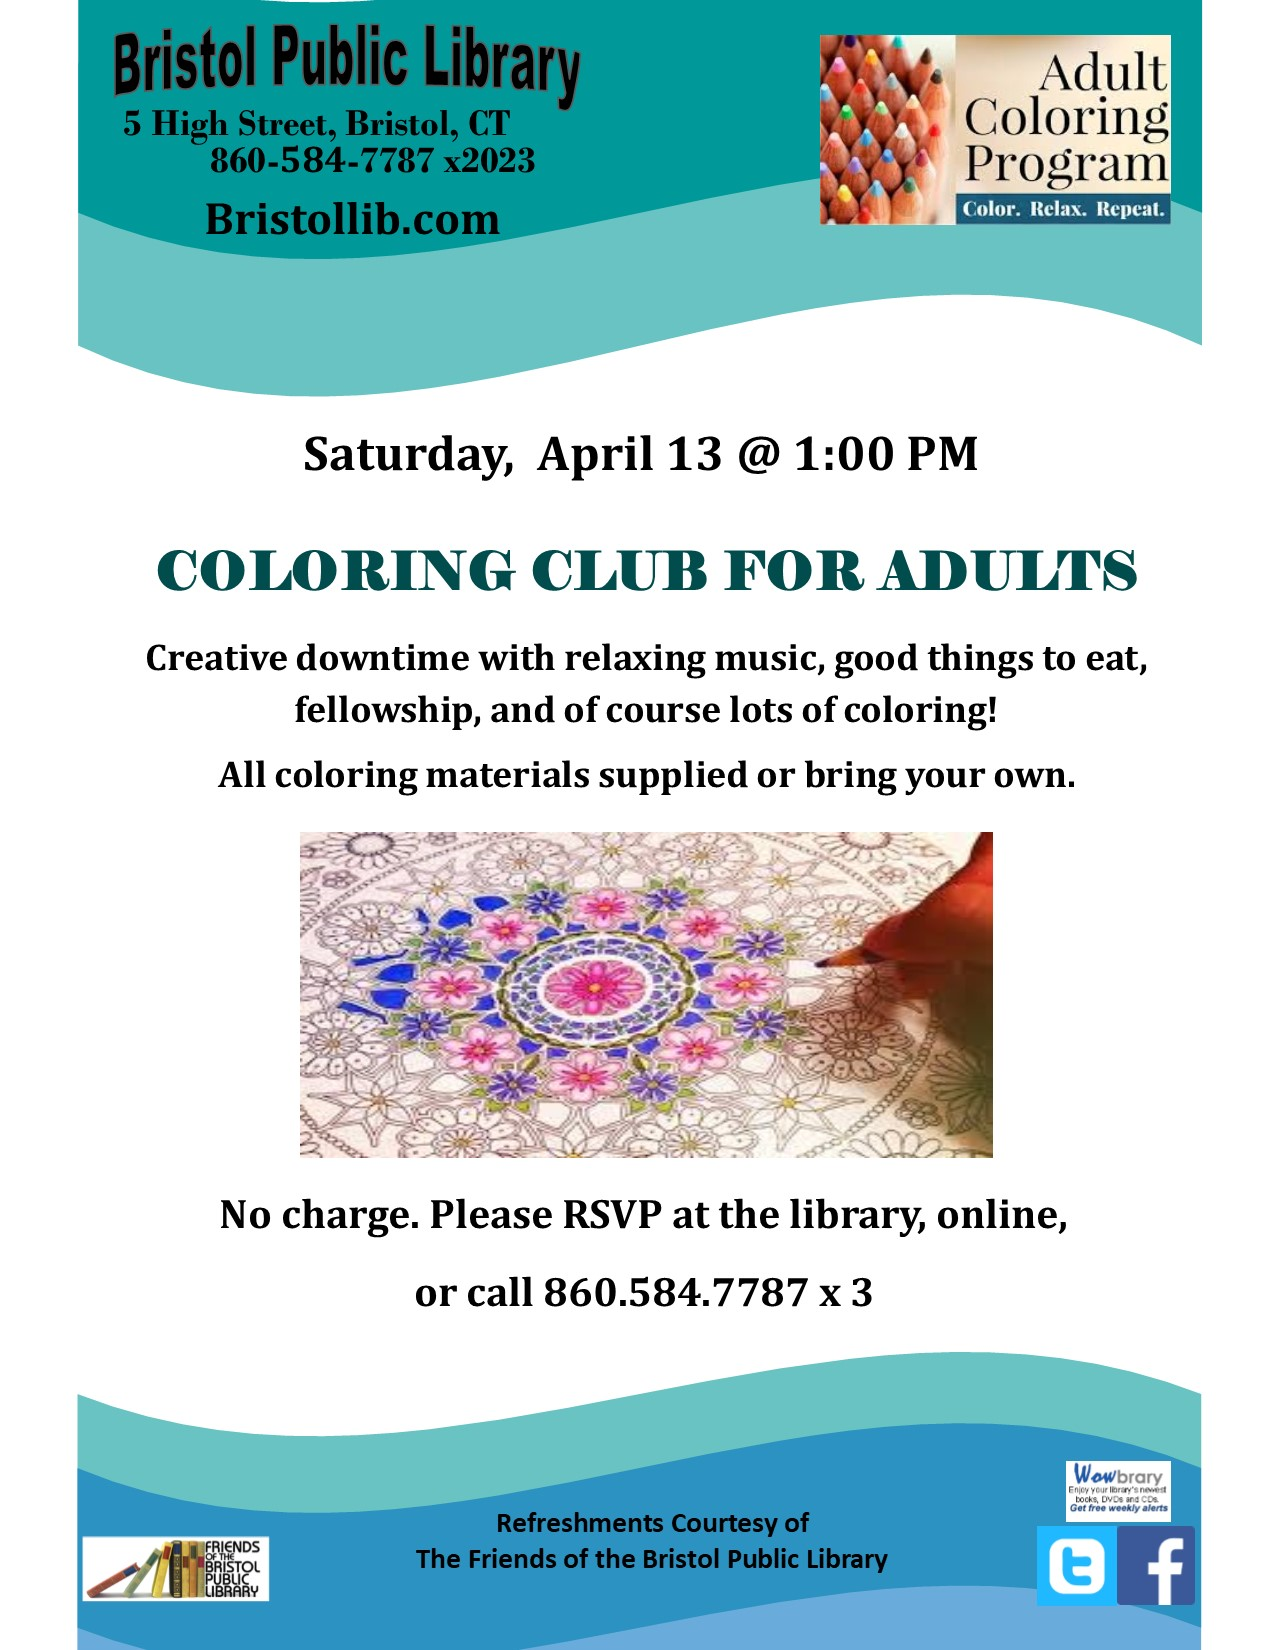 Coloring Club for Adults - Bristol Public Library